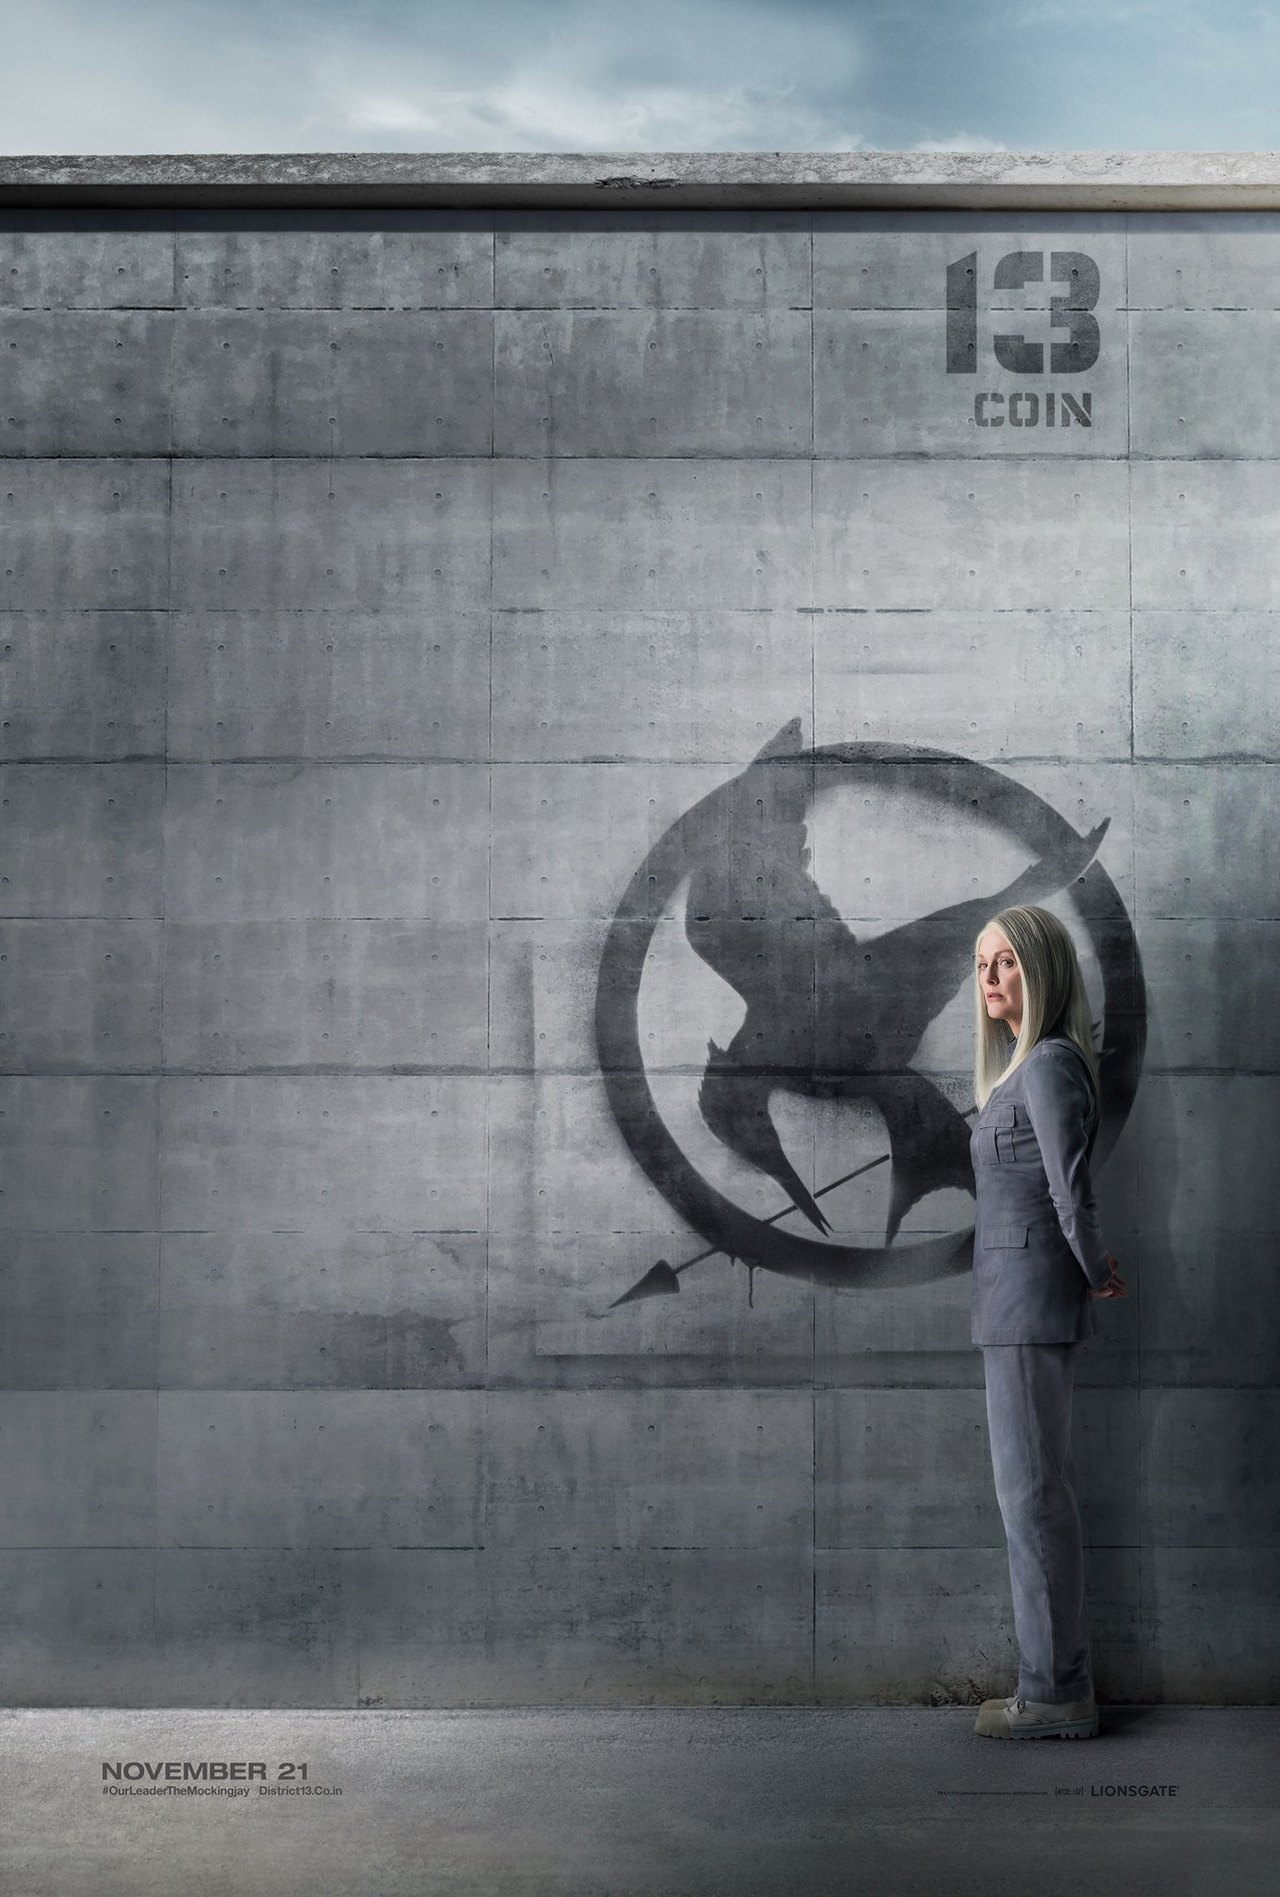 President Coin District 13 Citizen Poster